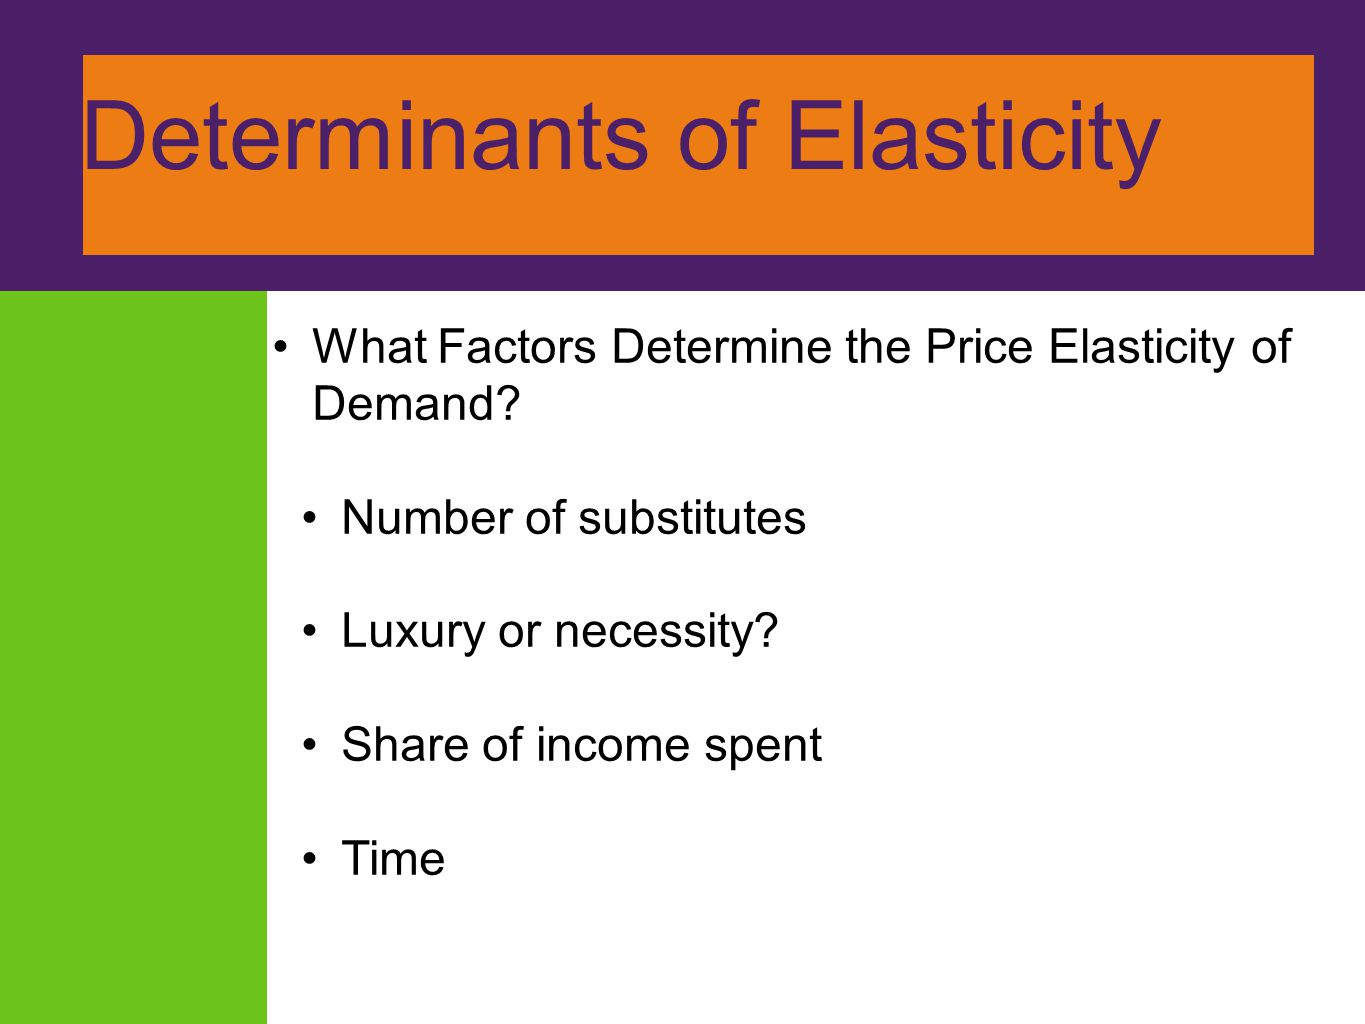 Determinants of Elasticity What Factors Determine the Price Elasticity of Demand? Number of substitutes Luxury or necessity? Share of income spent Tim